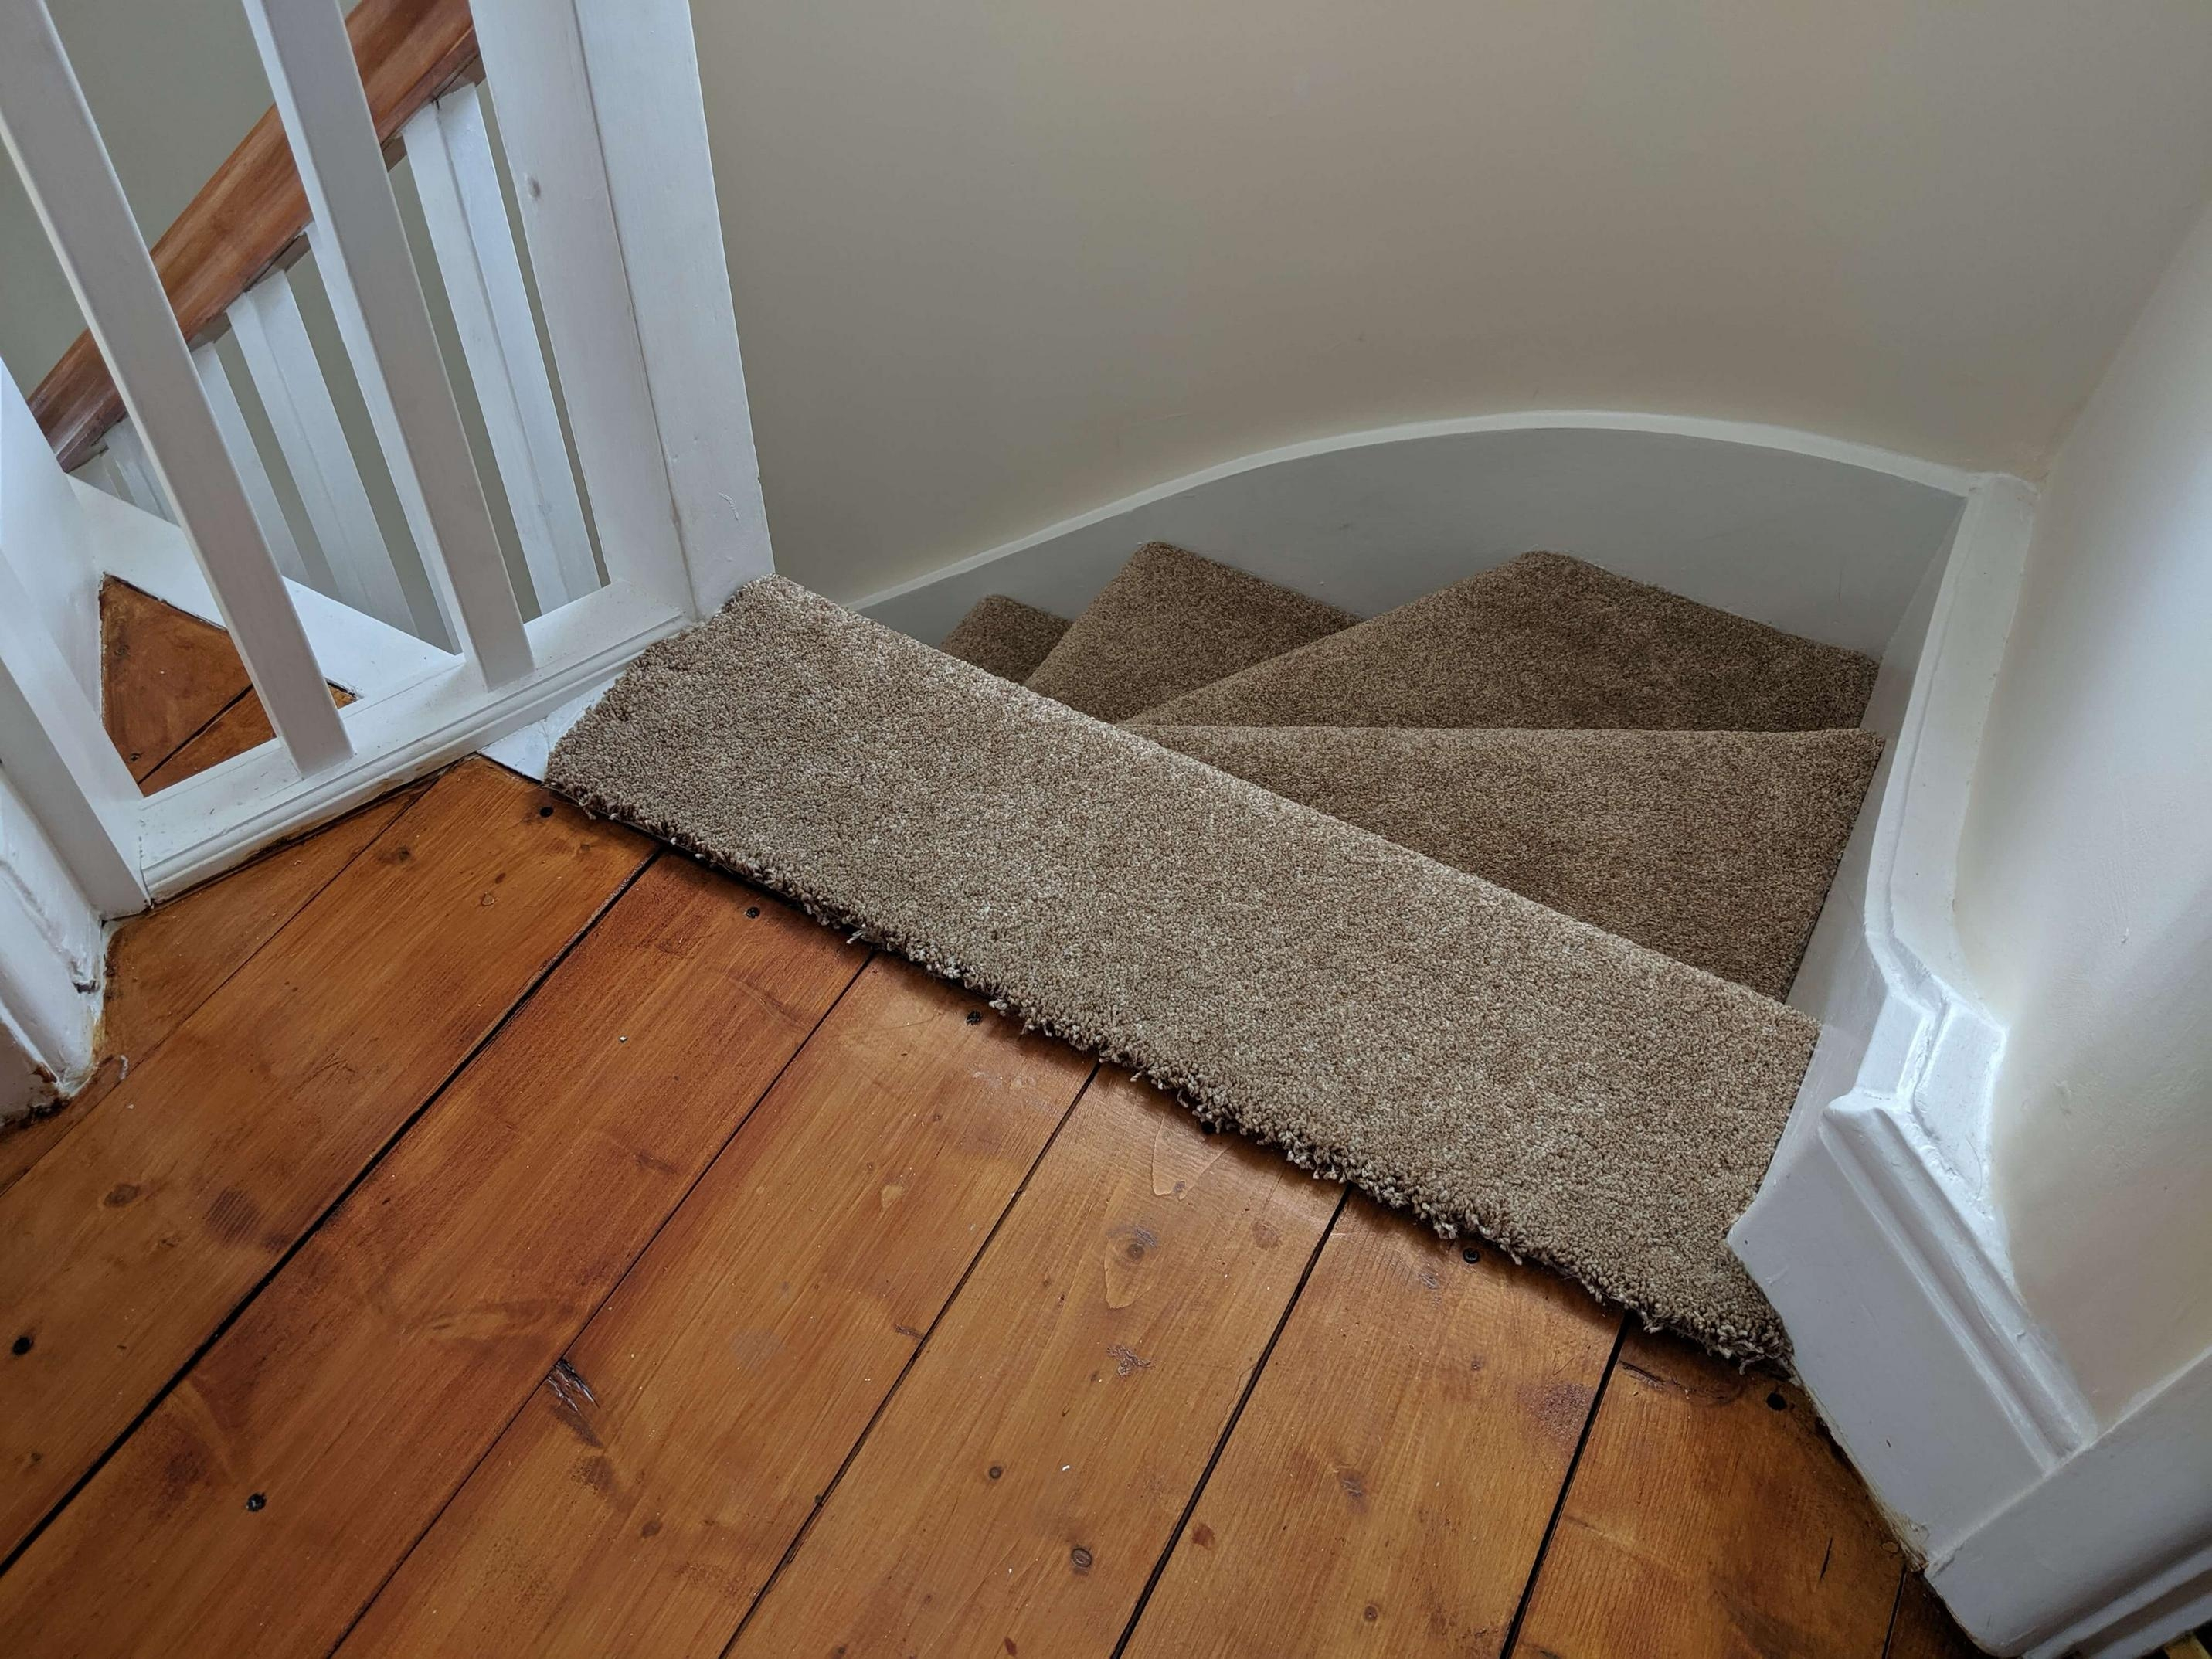 Which Style Transition Threshold Do I Need For Carpeted Stairs To | Hardwood Floor To Stair Transition | Tile | Molding | Vinyl Plank | Laminate | Carpeted Stairs